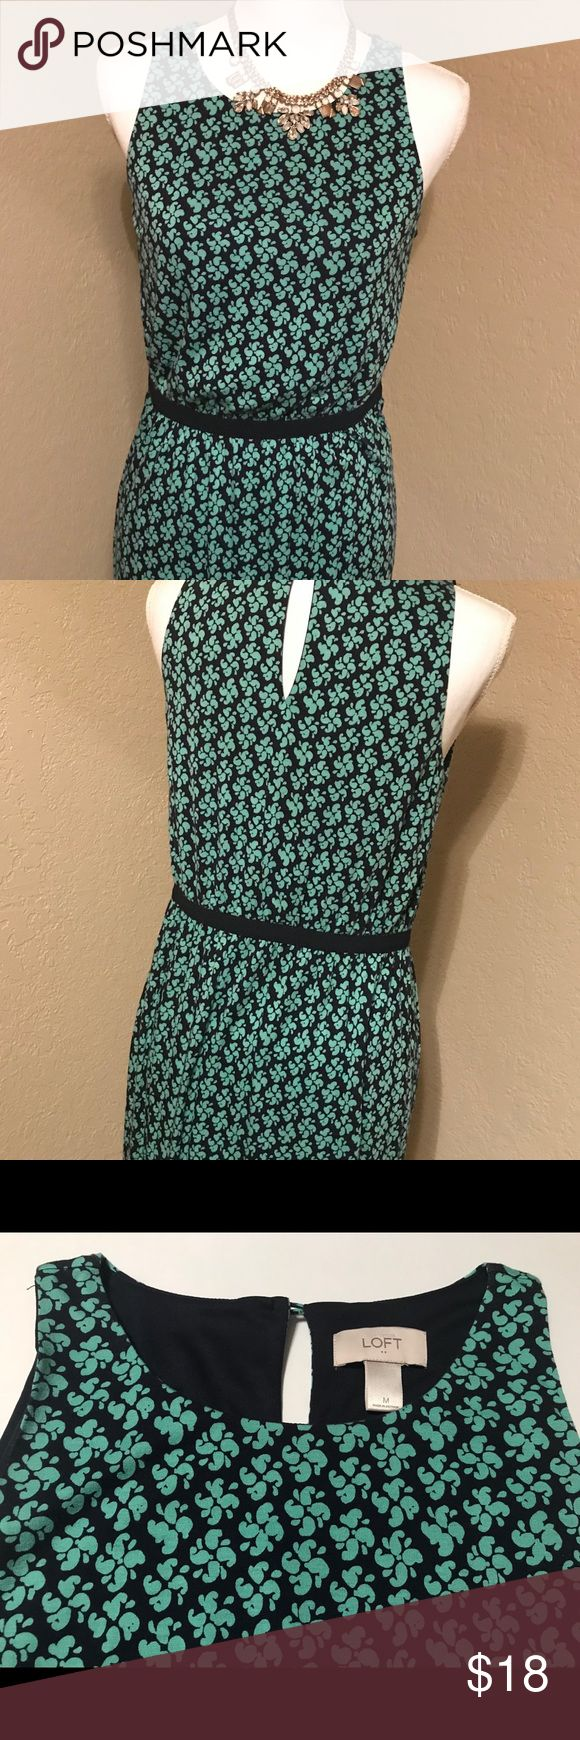 Ann Taylor Loft Career Dress Medium Navy / Mint This is a size medium Ann Taylor Loft Dress in a navy blue and mint. It is gently preowned and in great condition. No holes, rips, or stains.   Necklace is not included. LOFT Dresses